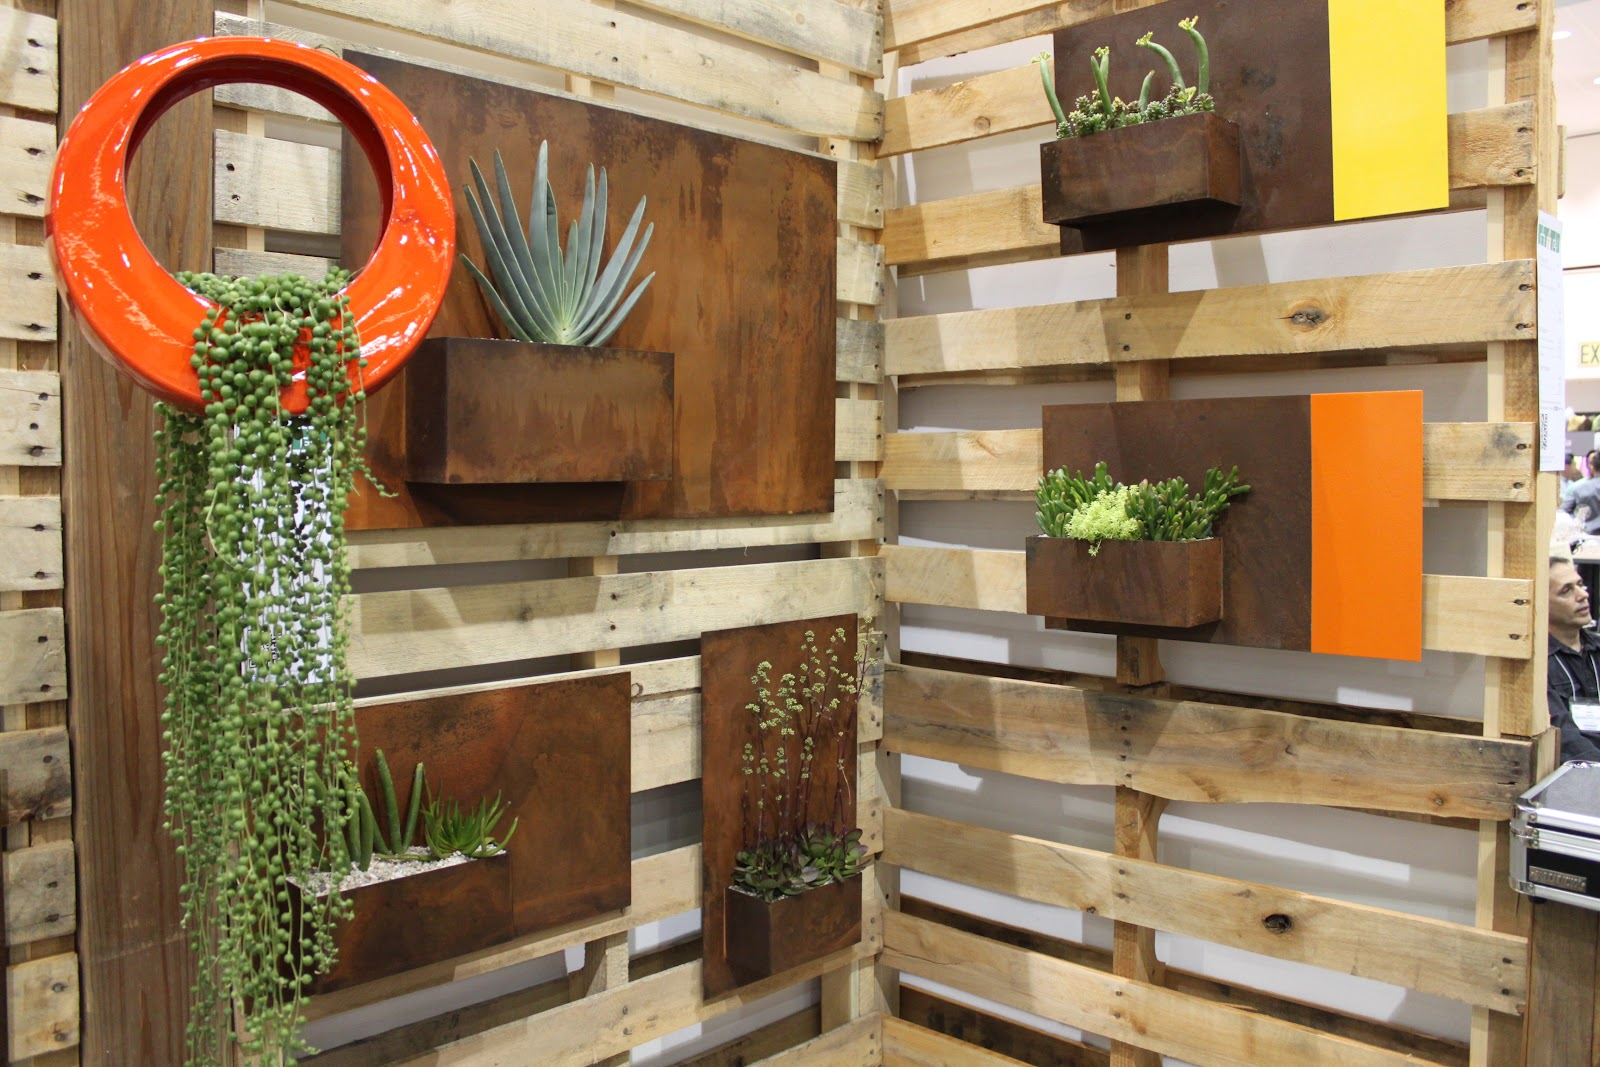 Exterior Wall Decoration Ideas: Landscape Idea #2 Modern Wall Planters